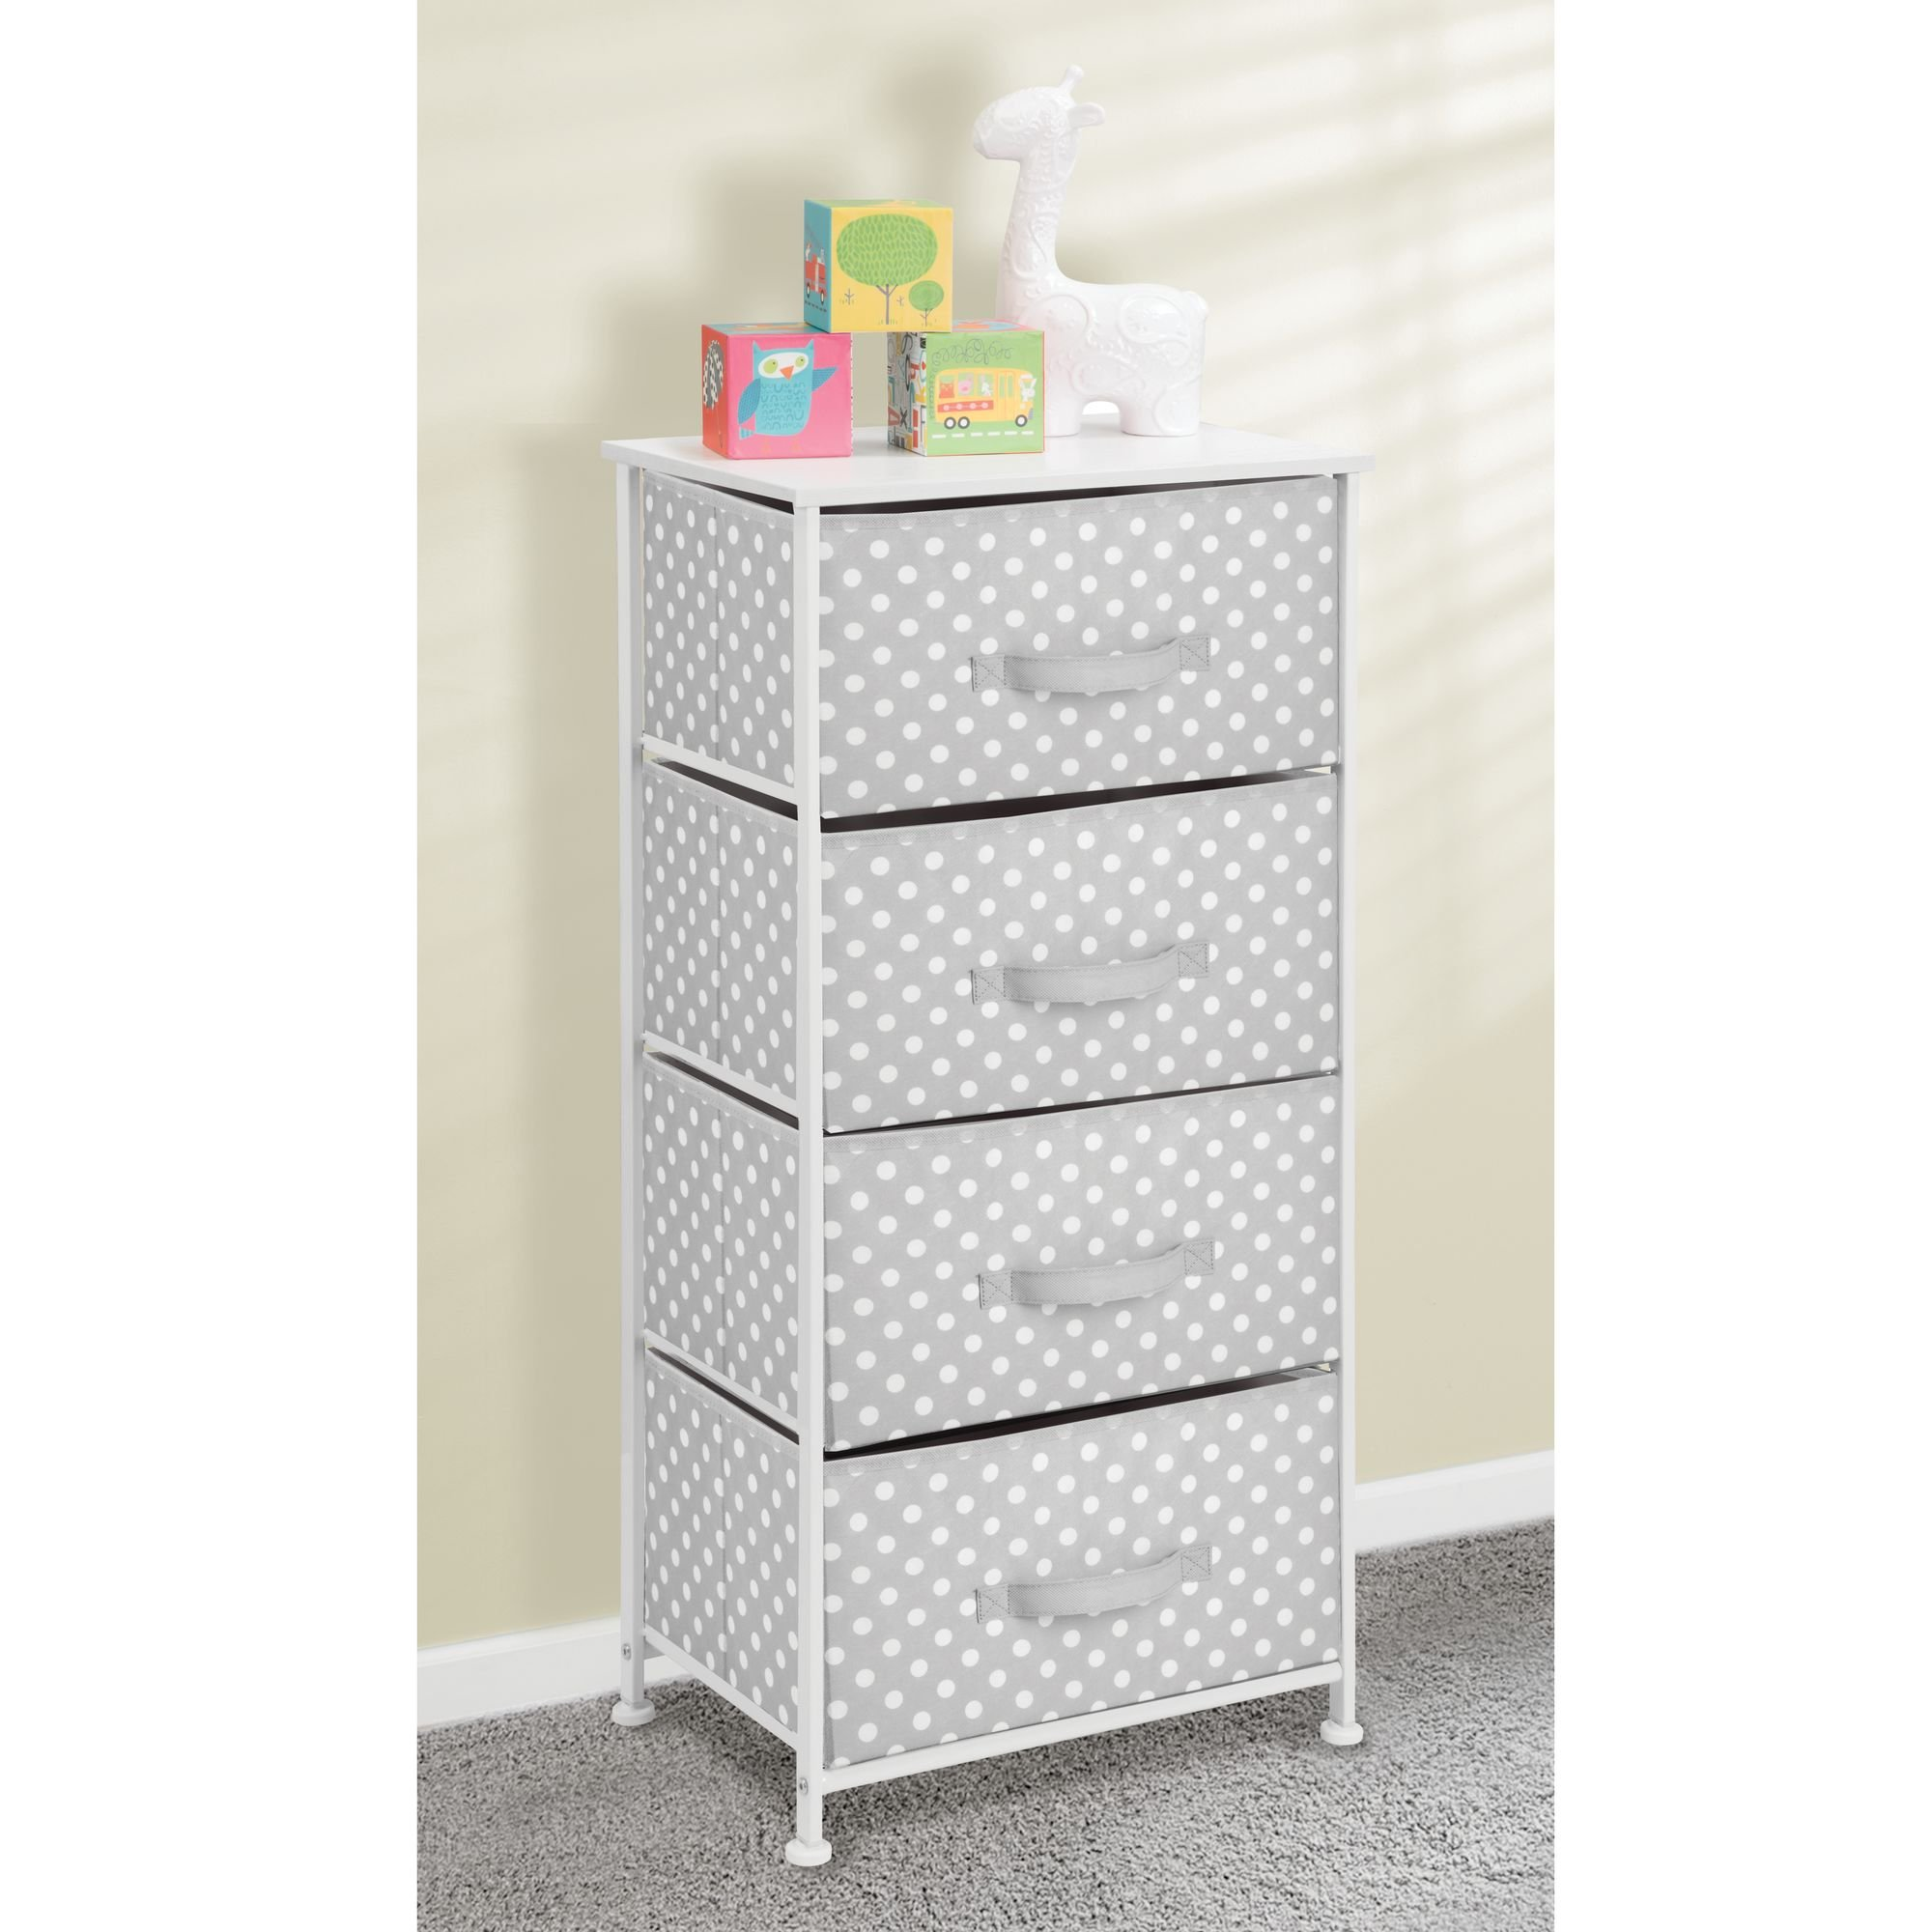 mDesign 4-Drawer Vertical Dresser Storage Tower - Sturdy Steel Frame, Wood Top and Easy Pull Fabric Bins - Multi-Bin Organizer Unit for Child/Kids Bedroom or Nursery - Light Gray with White Polka Dots by mDesign (Image #1)